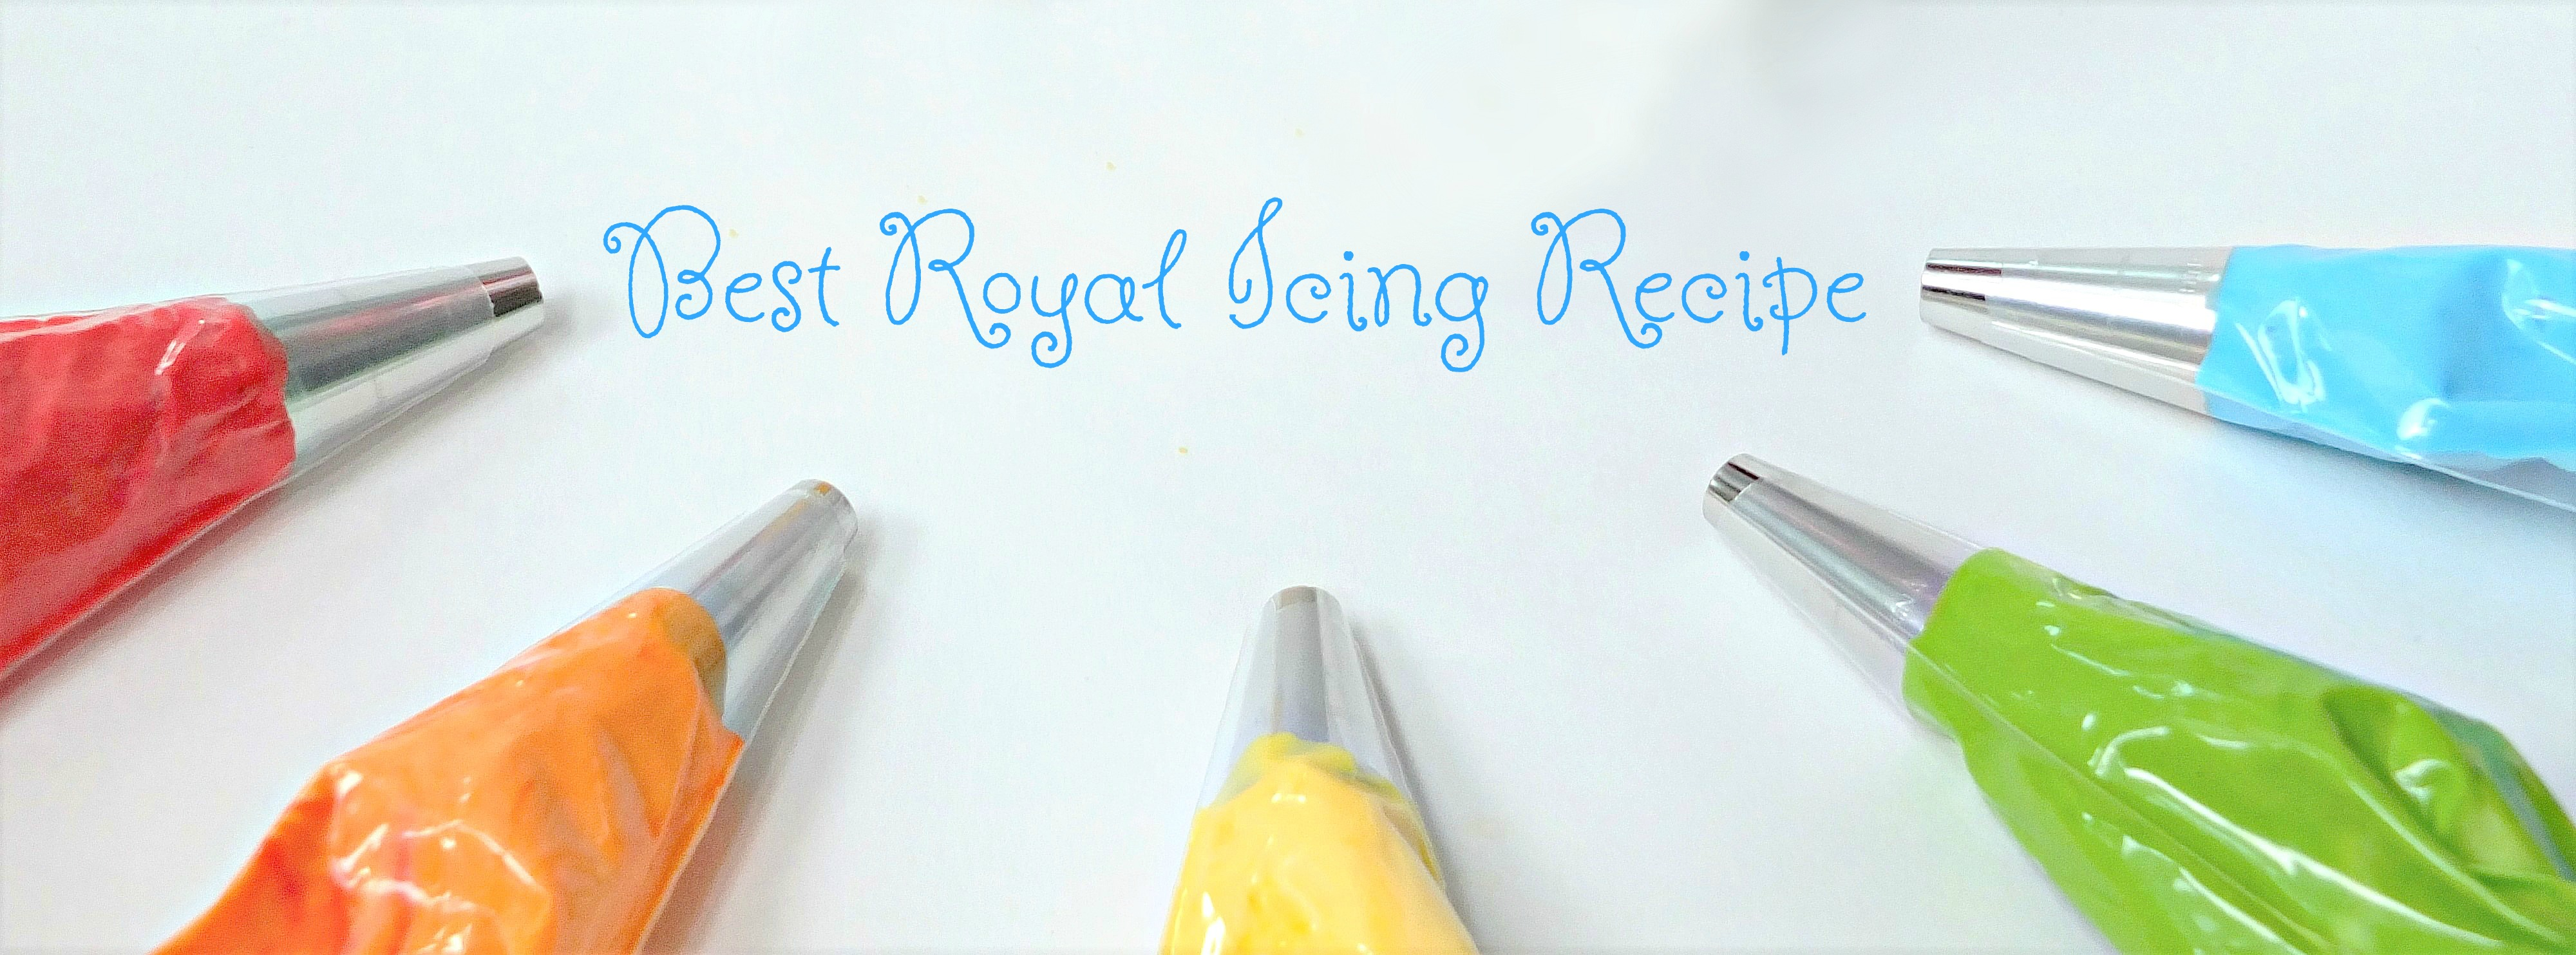 Best Royal Icing Recipe, easy royal icing recipe, meringue powder royal icing recipe, eggless icing